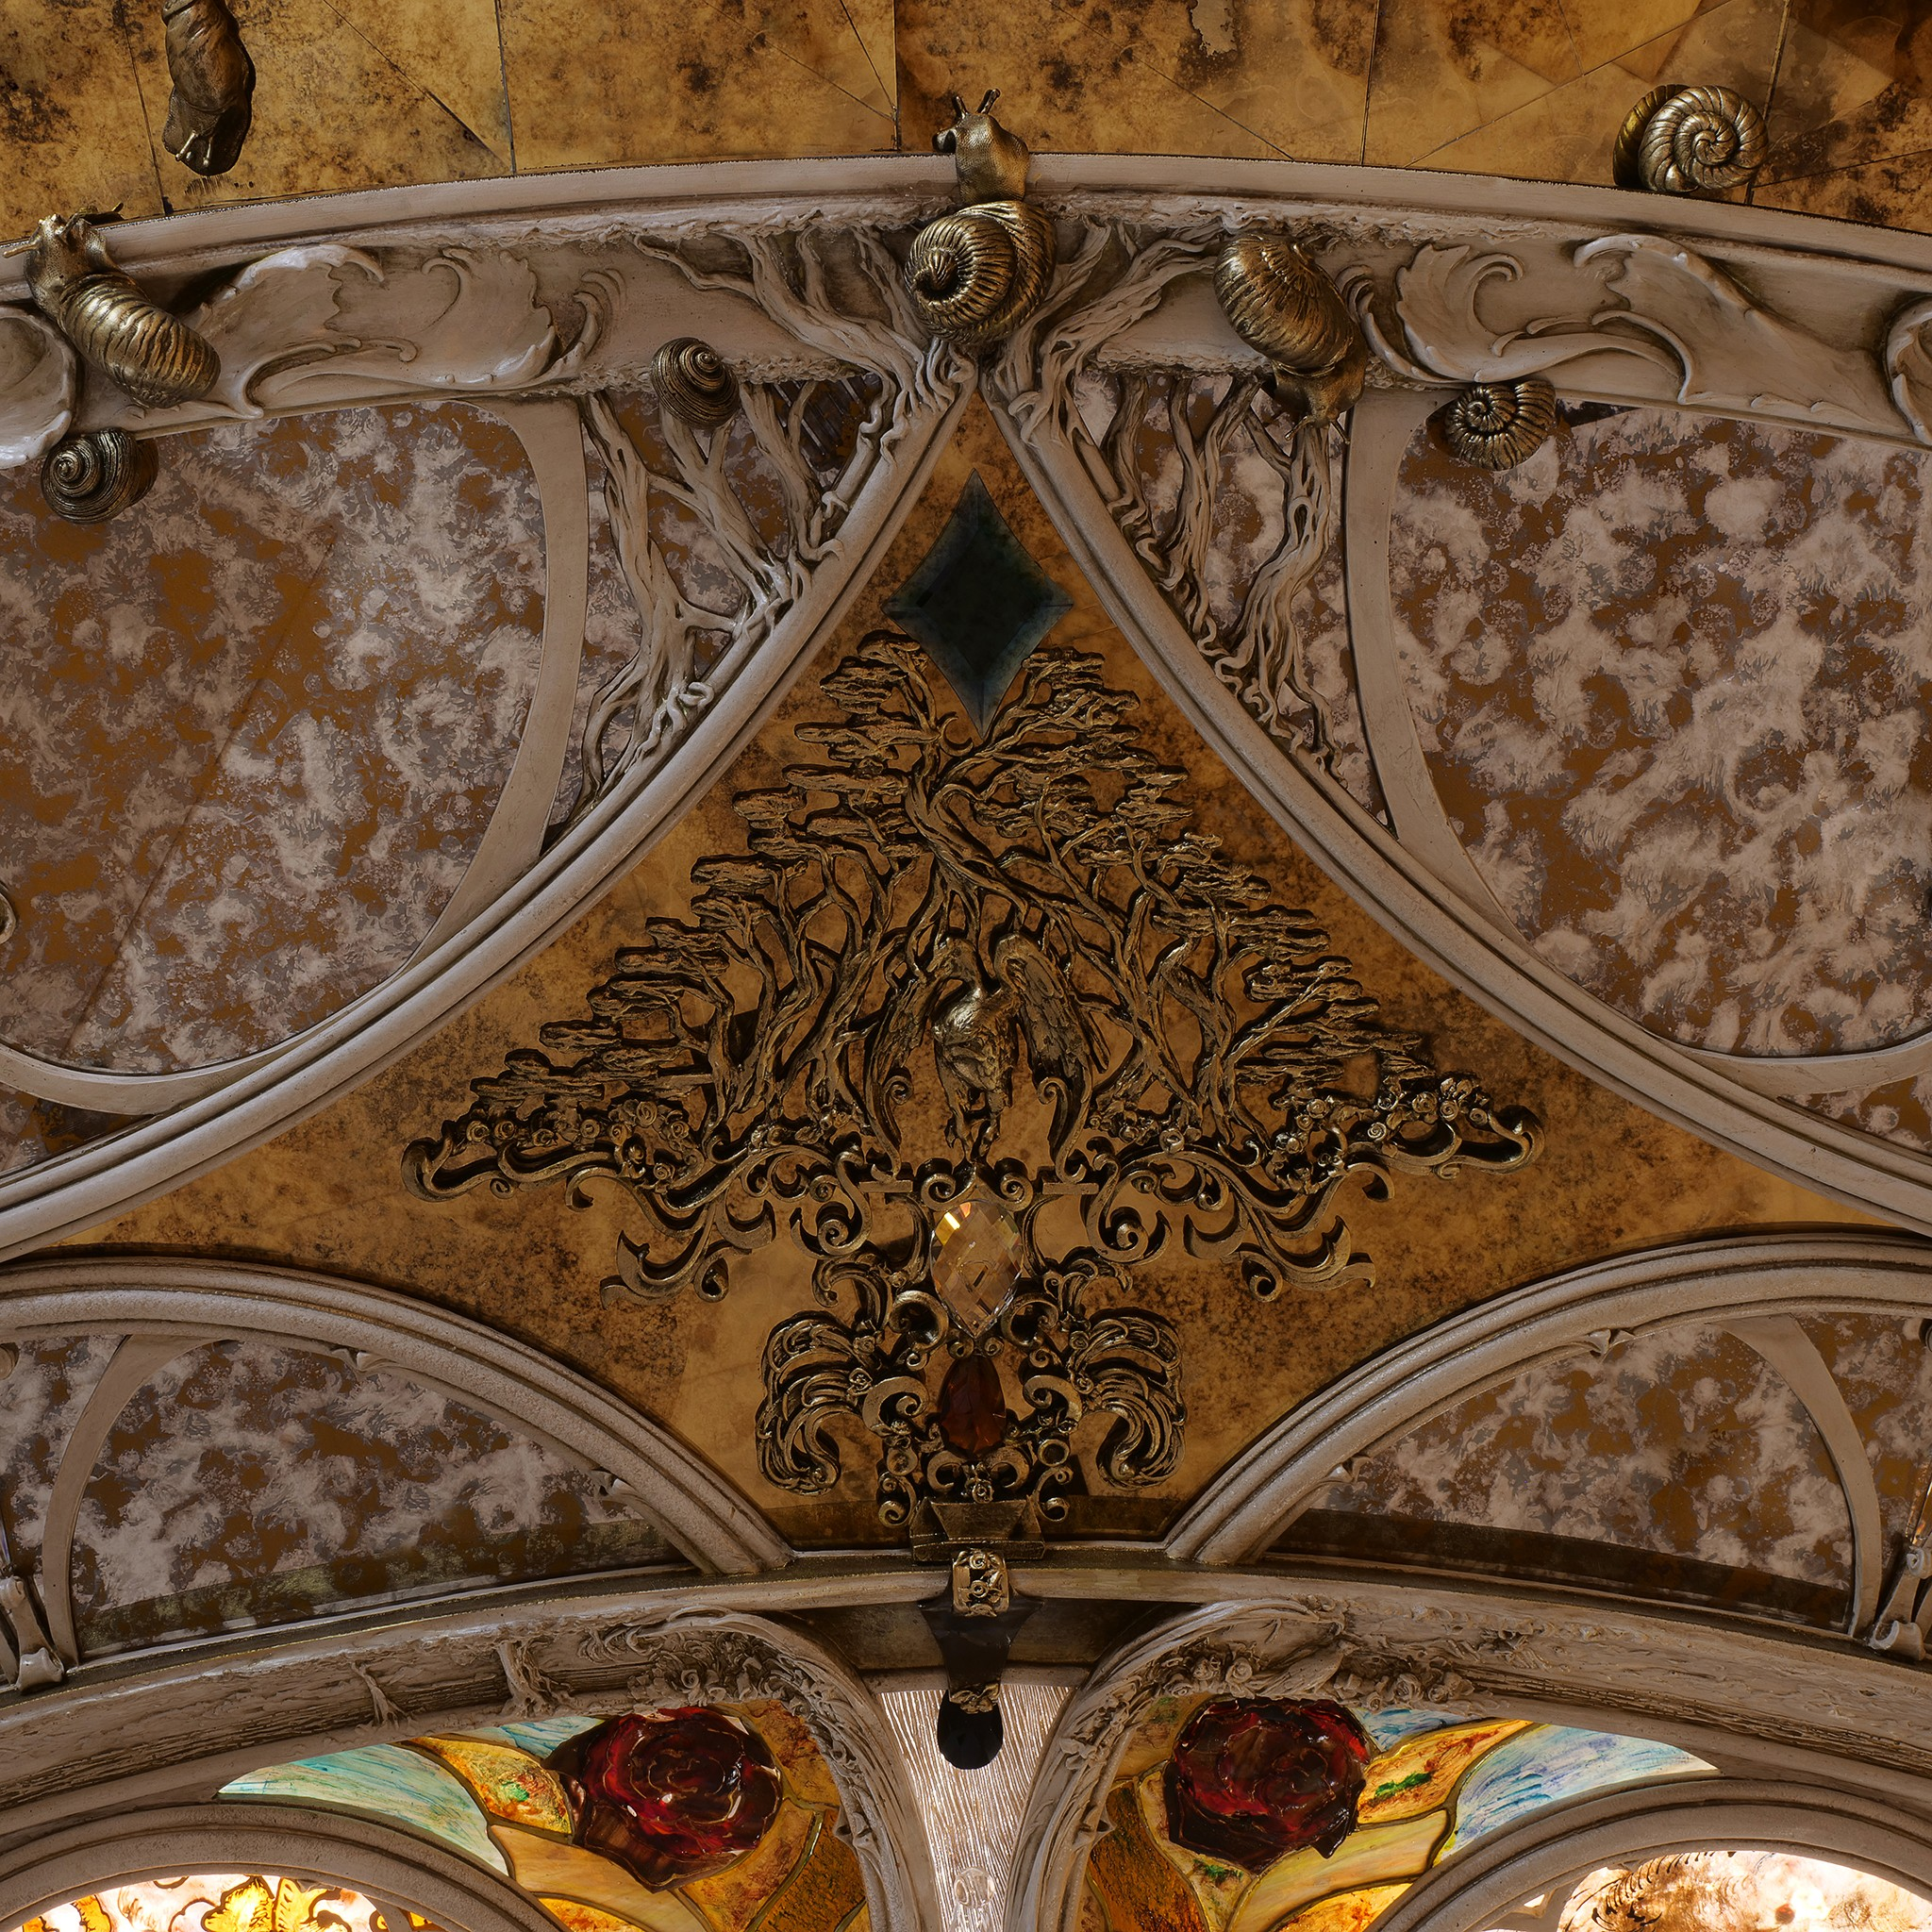 professional ceiling photos. photographer services for architects and designers